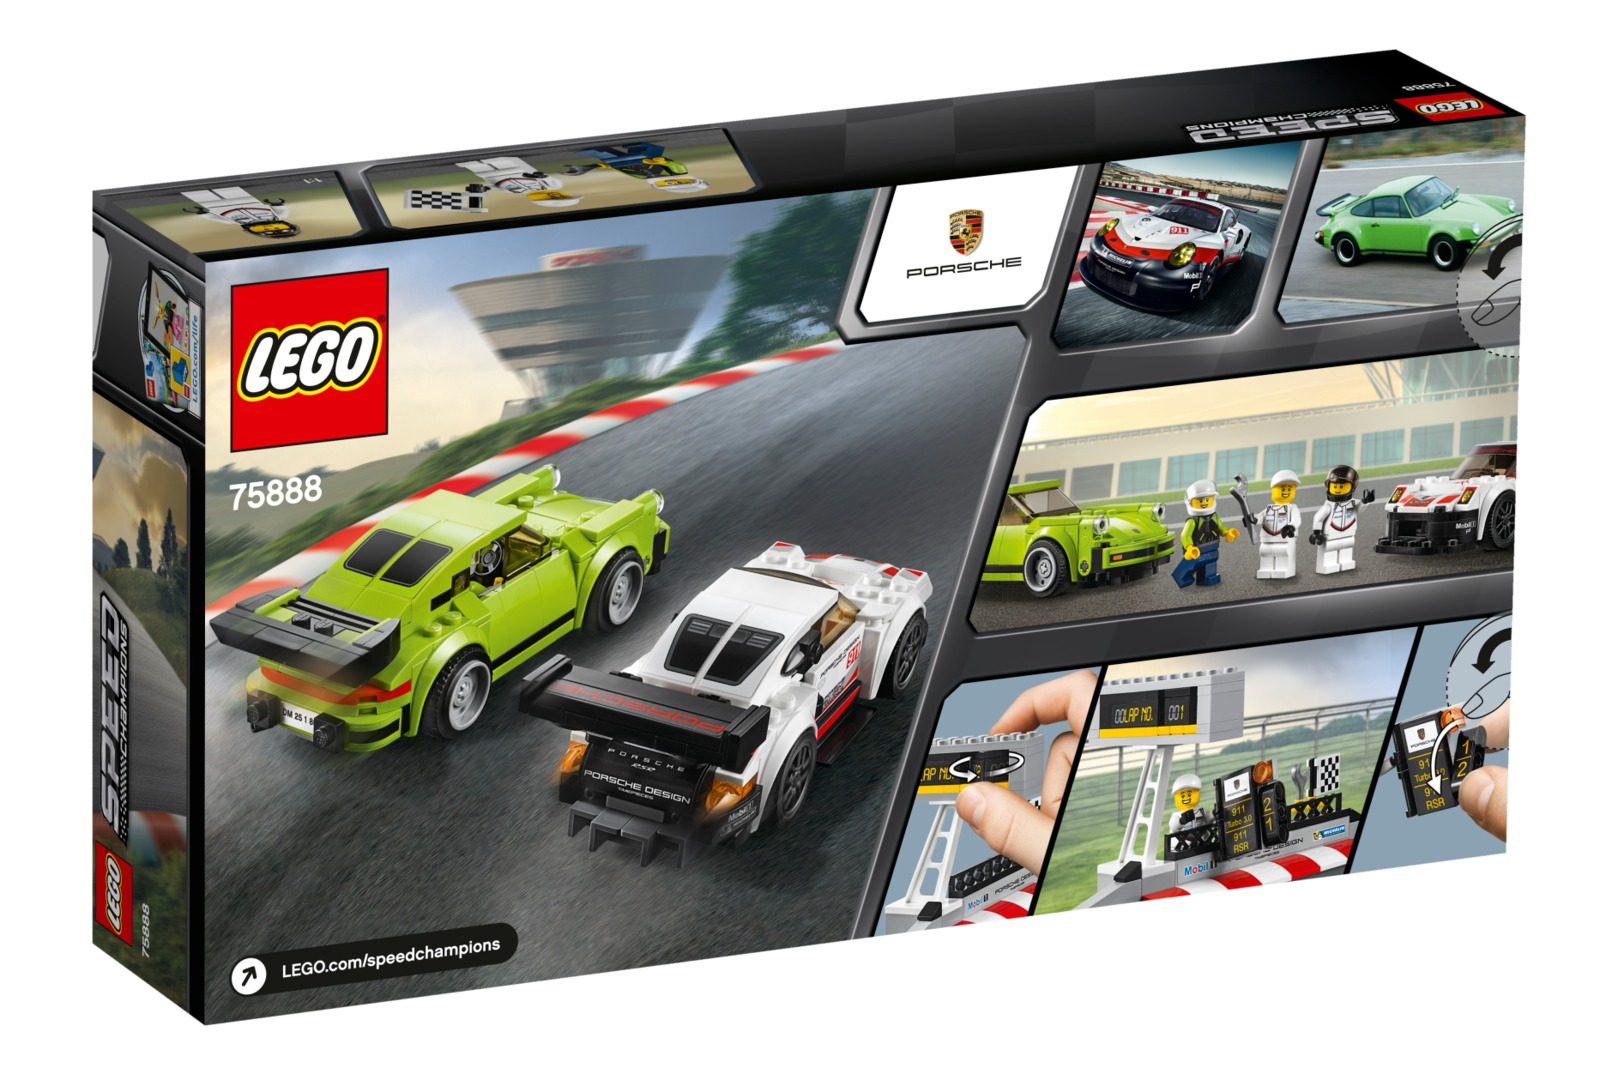 lego speed champions porsche 911 rsr and 911 turbo 3 0 75888 toy at mighty ape nz. Black Bedroom Furniture Sets. Home Design Ideas